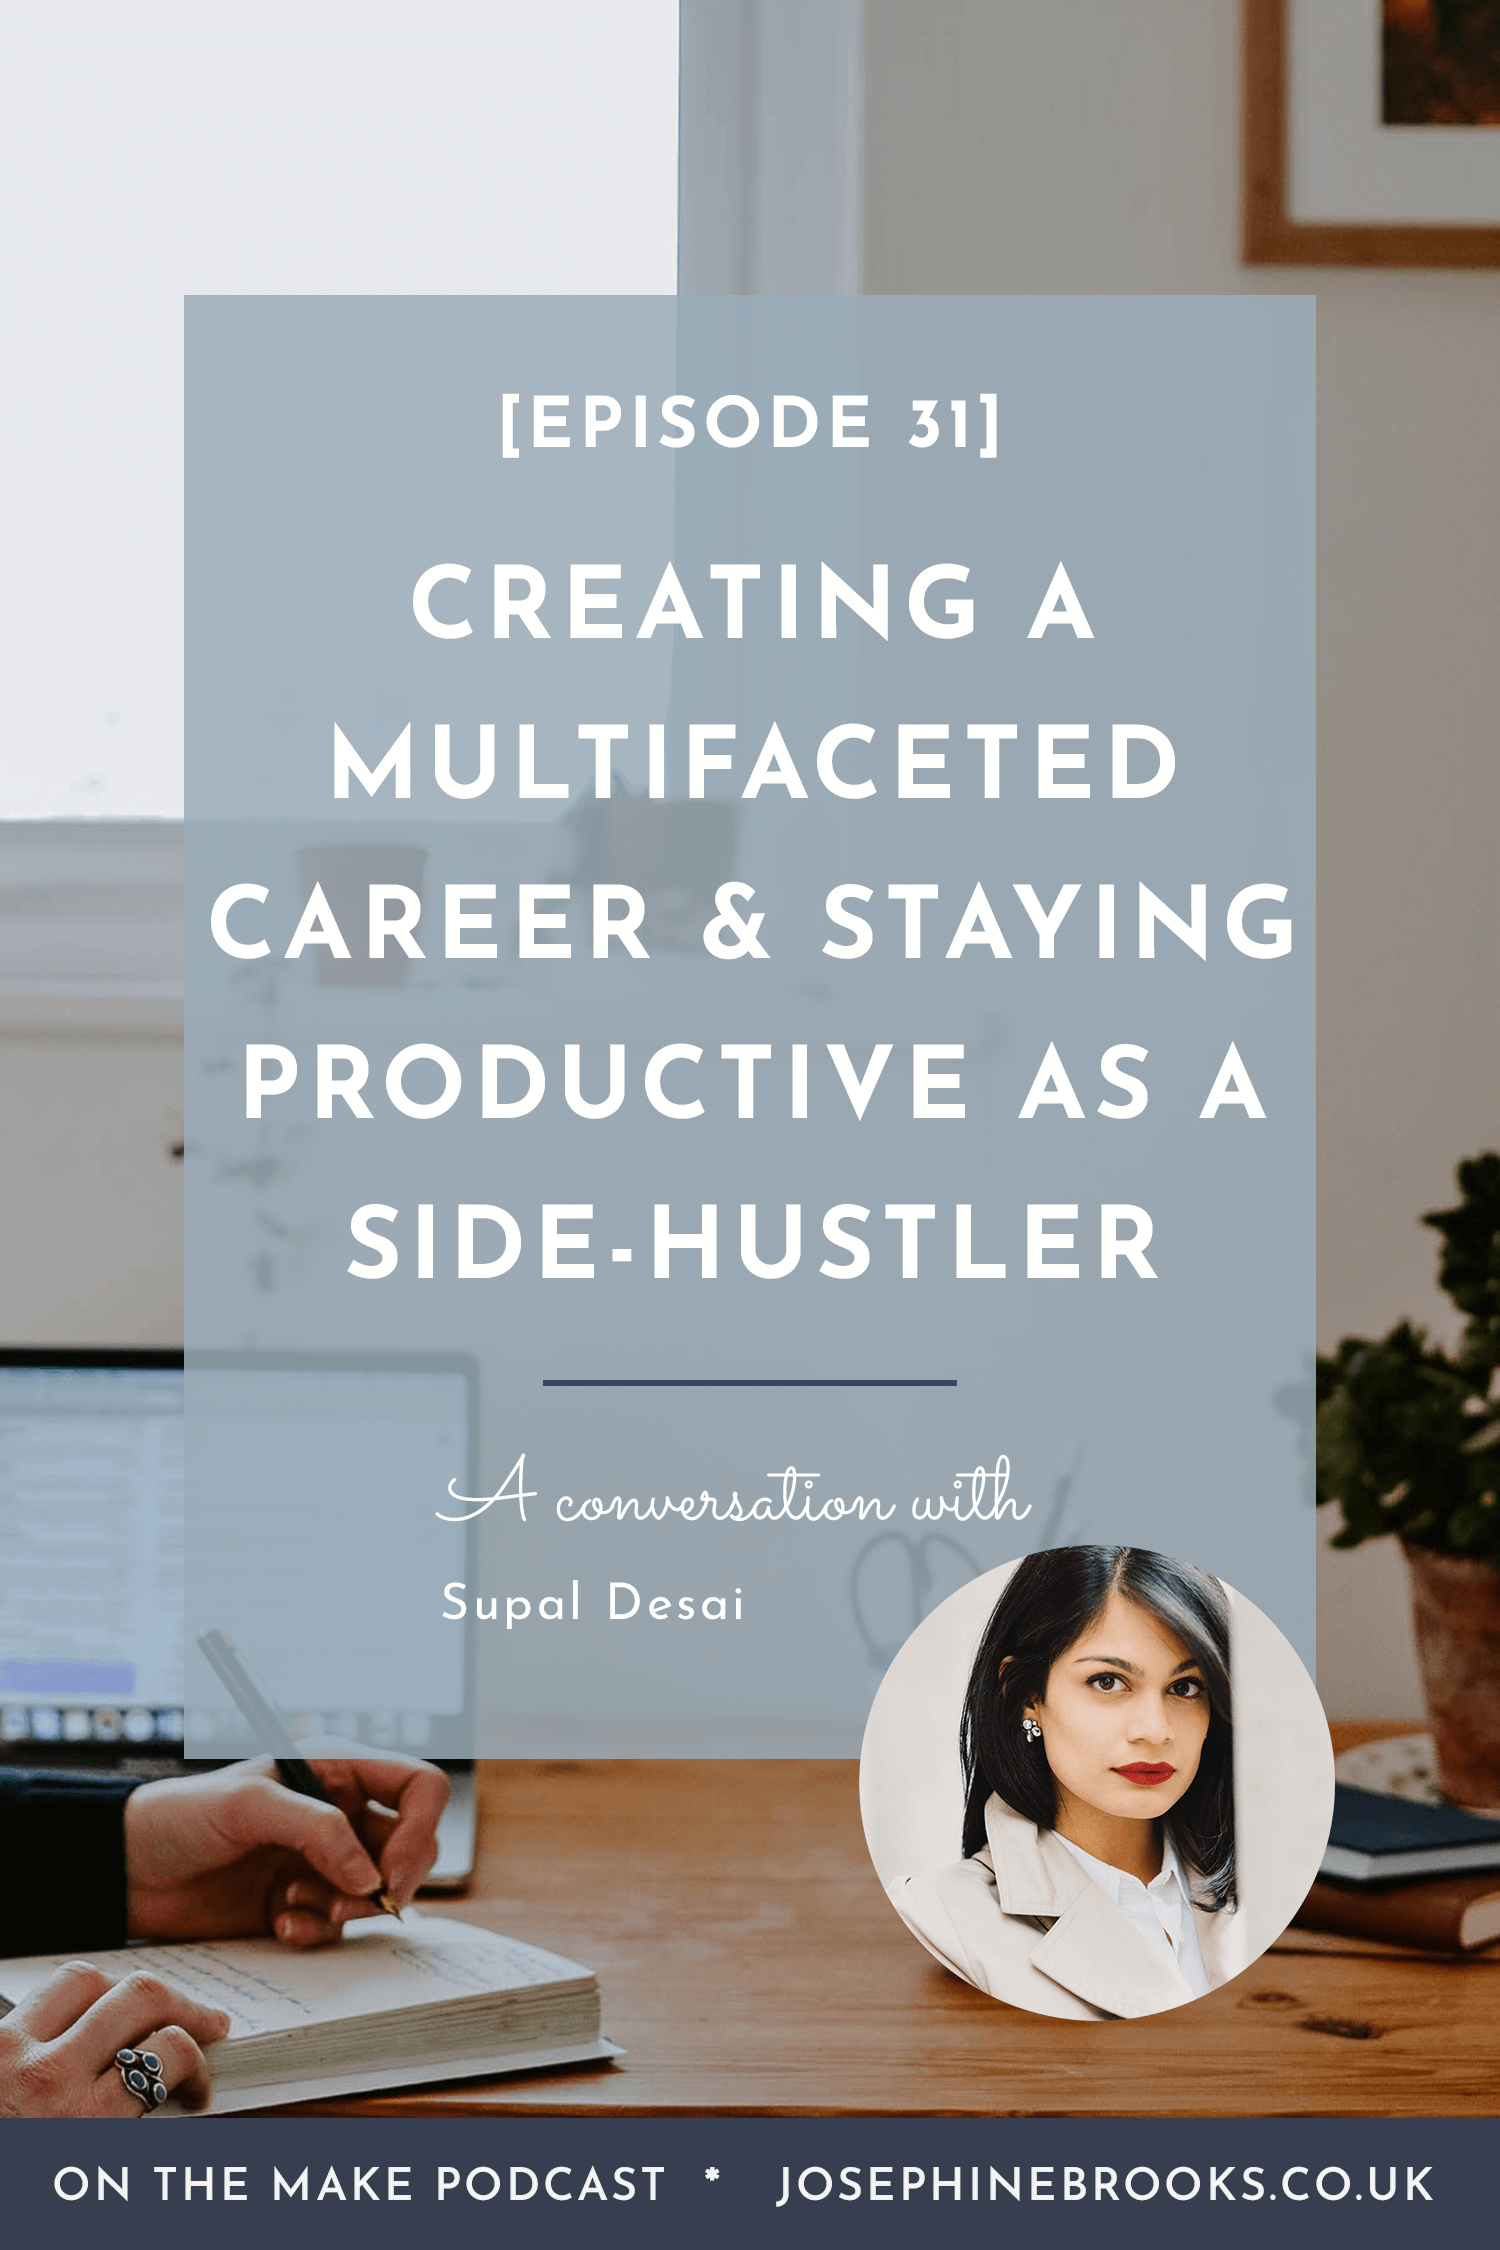 On the Make Episode 31 - Creating a Multifaceted Career & staying productive as a side-hustler with Supal Desai